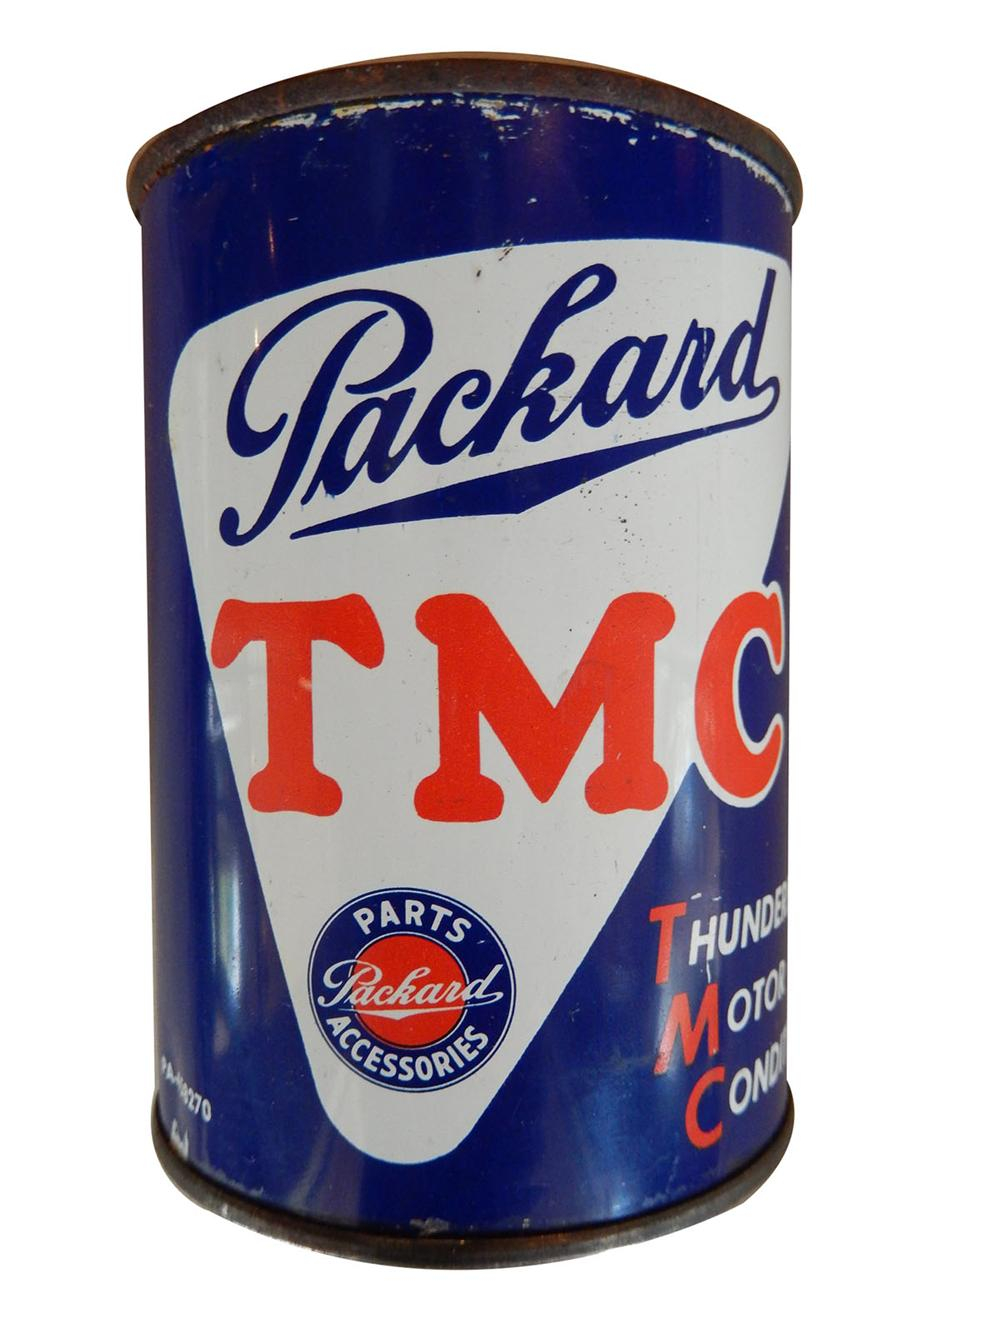 Rarely seen Packard Automobiles TMC Motor Conditioner tin.  Highly desirable. - Front 3/4 - 163168